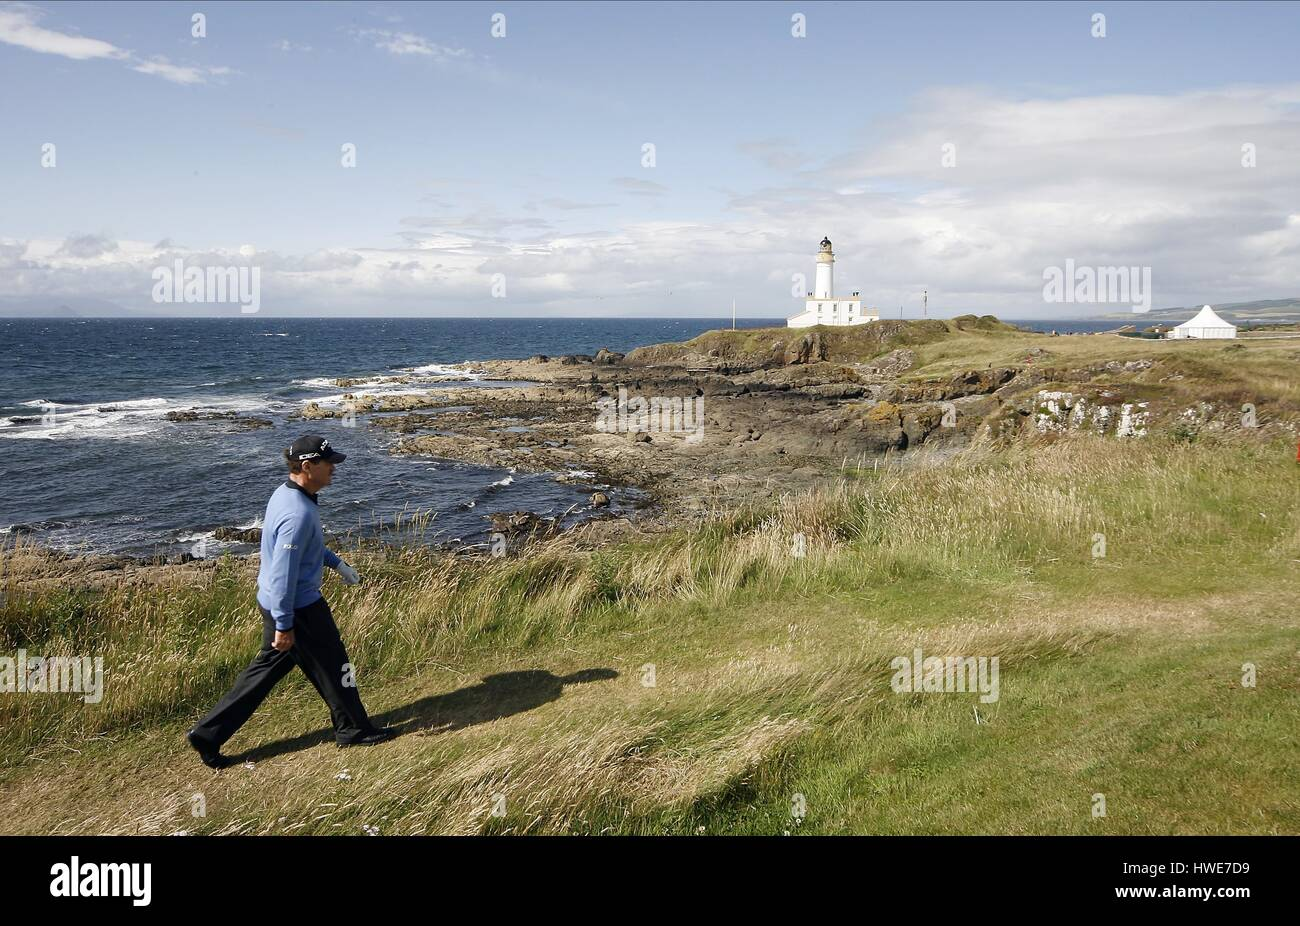 TOM WATSON ON THE 9TH HOLE THE OPEN TURNBERRY 2009 TURNBERRY AYRSHIRE SCOTLAND 19 July 2009 - Stock Image